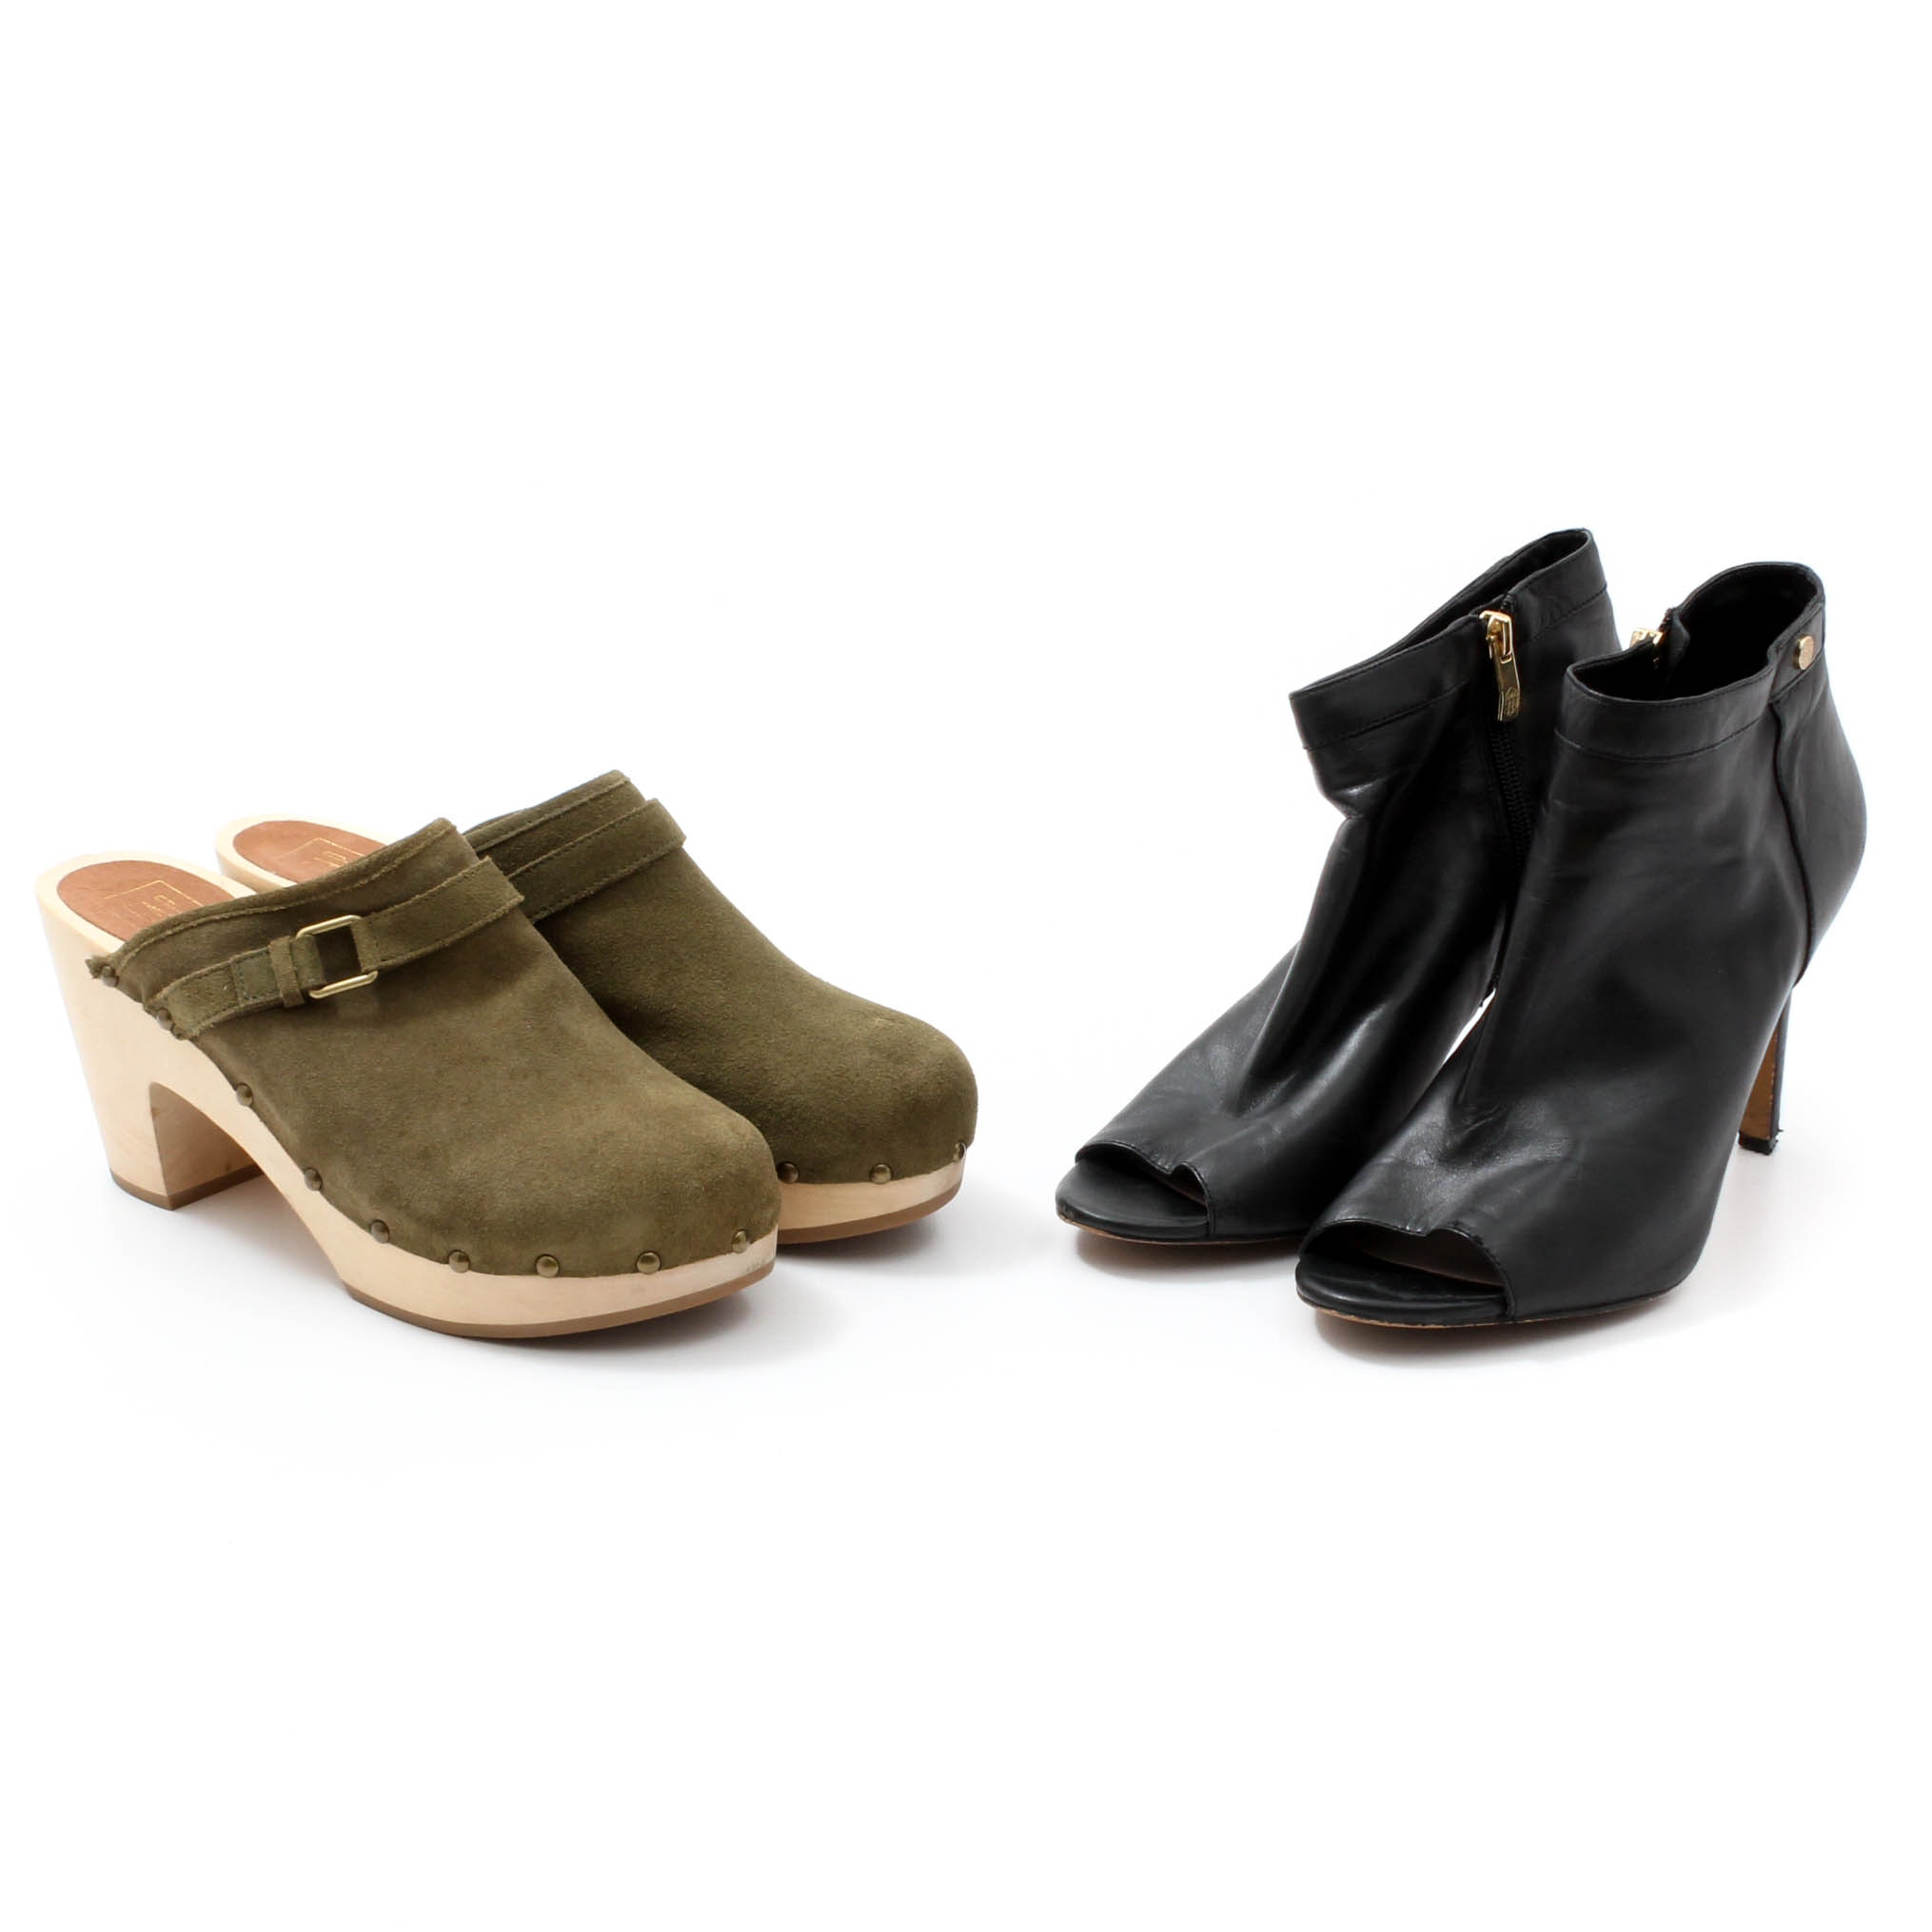 Vince Camuto Open-Toe Black Leather Booties and Gap Olive Suede Clogs